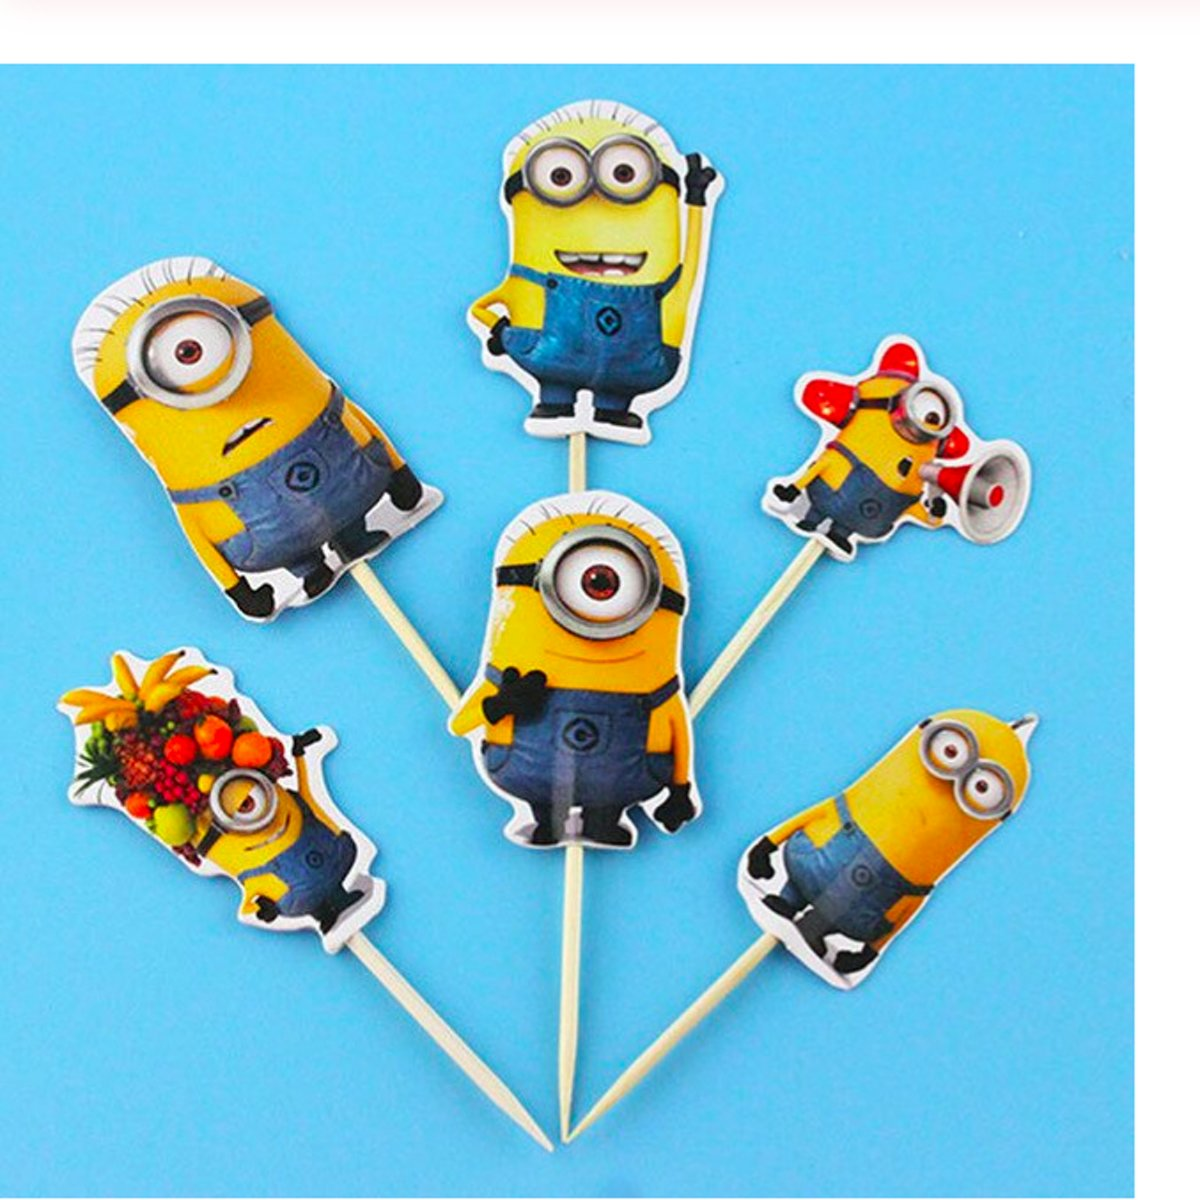 ProductsGoods - 24 x Leuke Minions cocktailprikkers